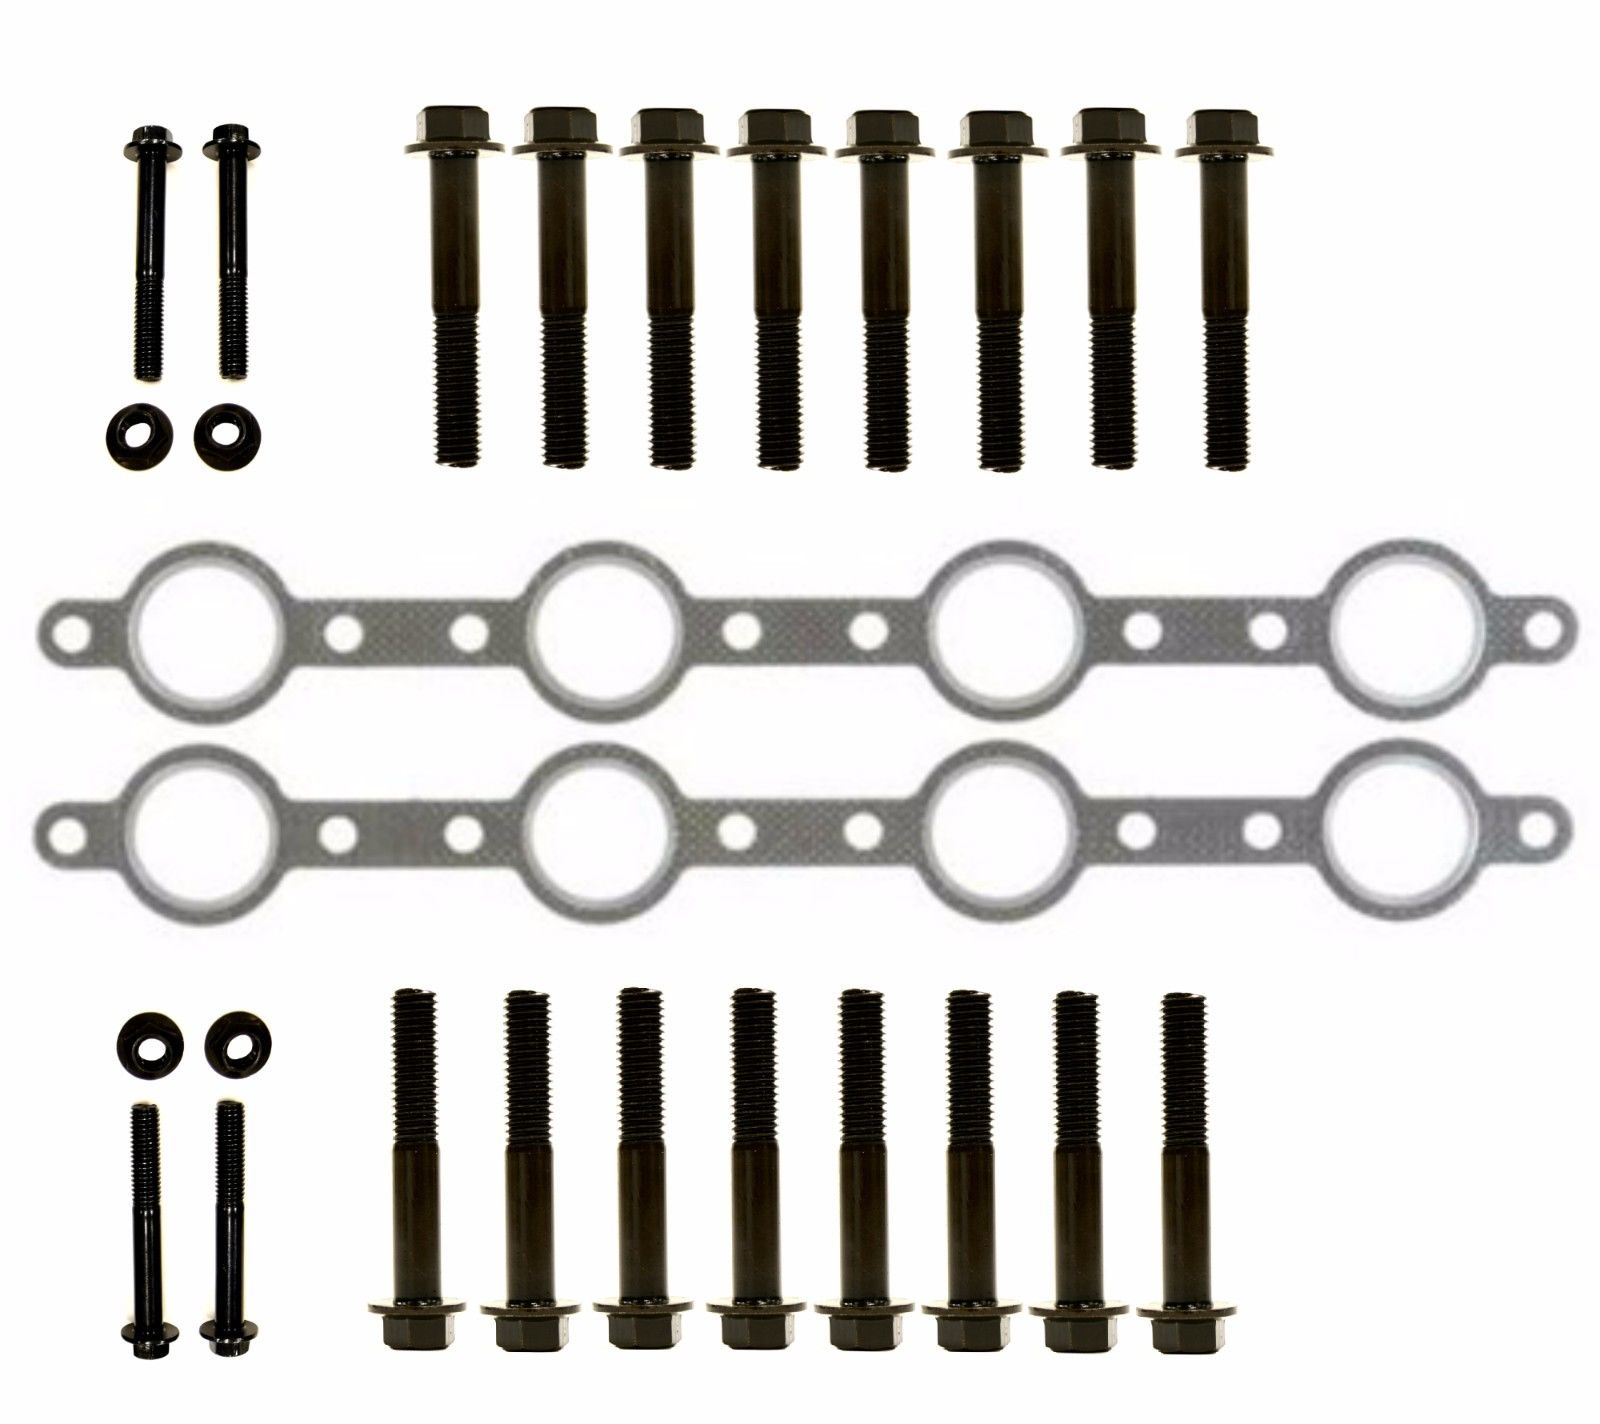 TrackTech Exhaust Manifold Gasket Bolt Kit for 94-03 7.3L Powerstroke